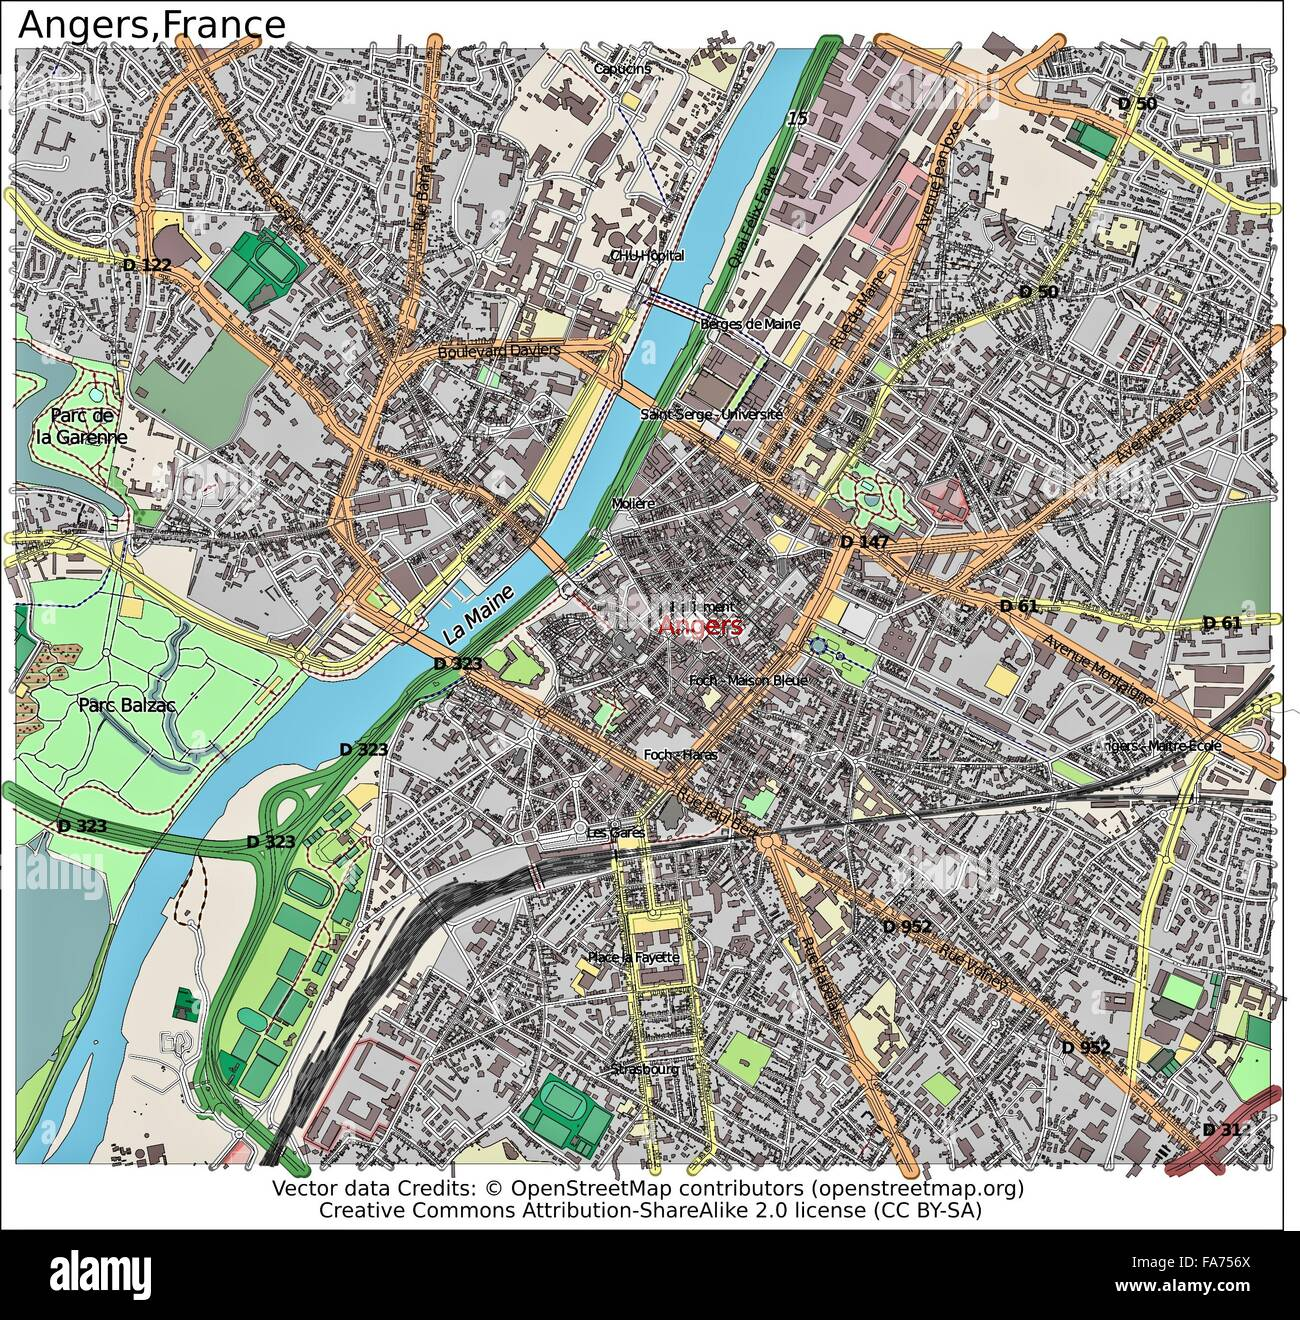 Angers France Location Map Stock Photo 92356178 Alamy